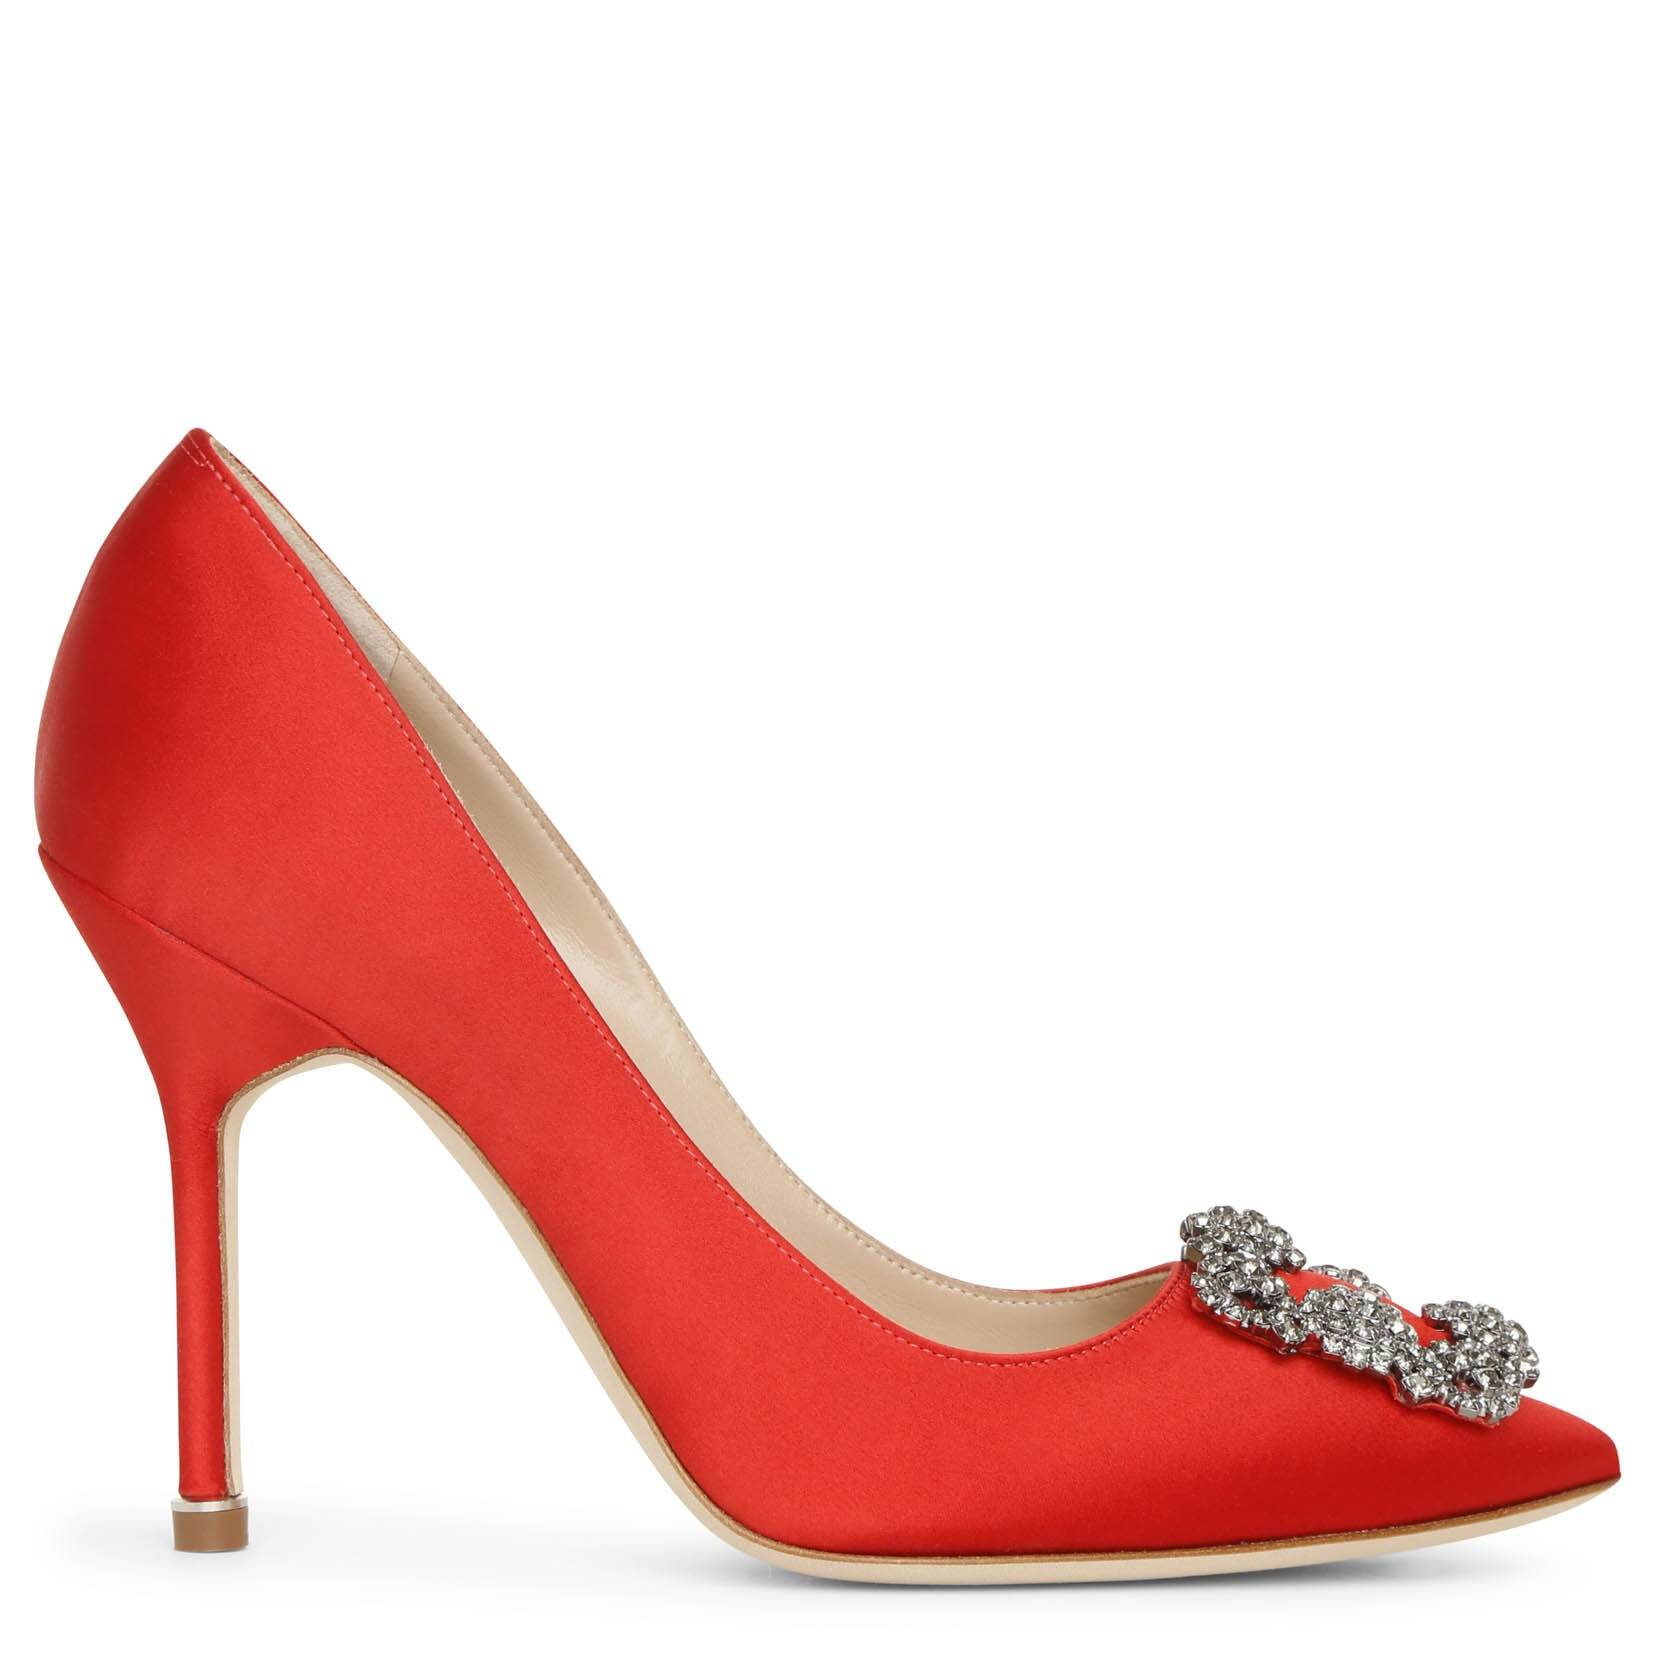 Manolo Blahnik Hangisi 105 red satin pumps  - Red - female - Size: 39,5